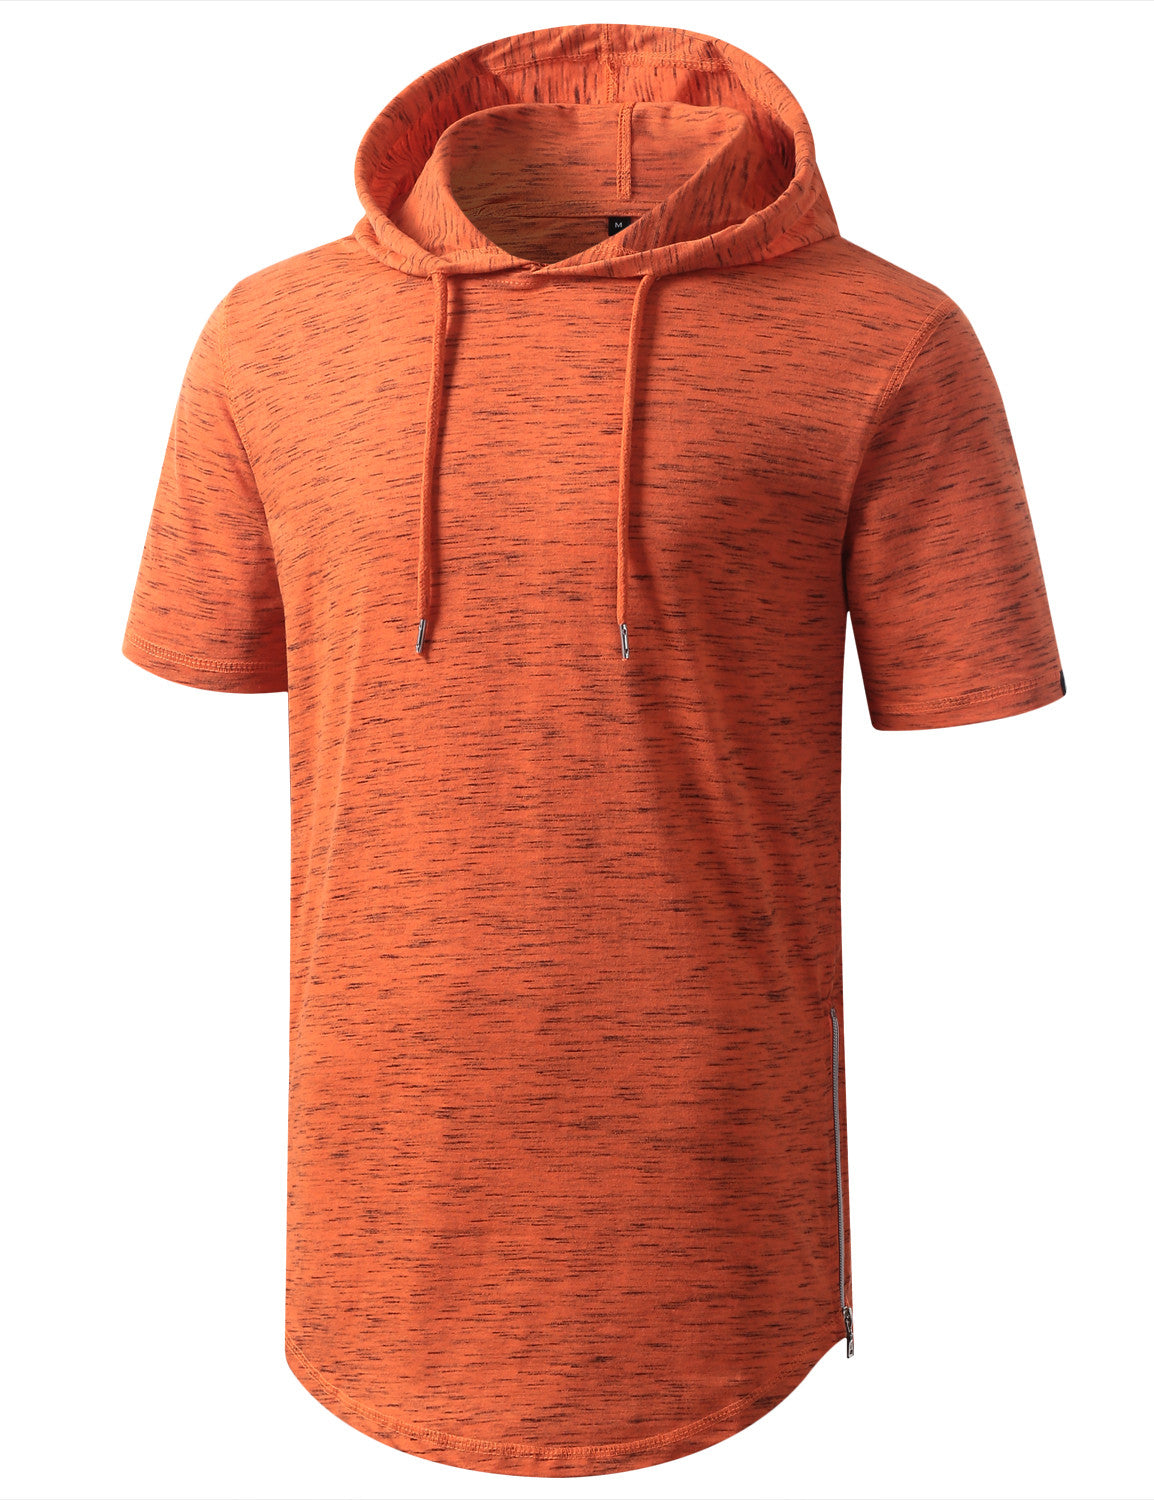 MARLEDORG Longline Short Sleeve Hoodie with Side Zipper